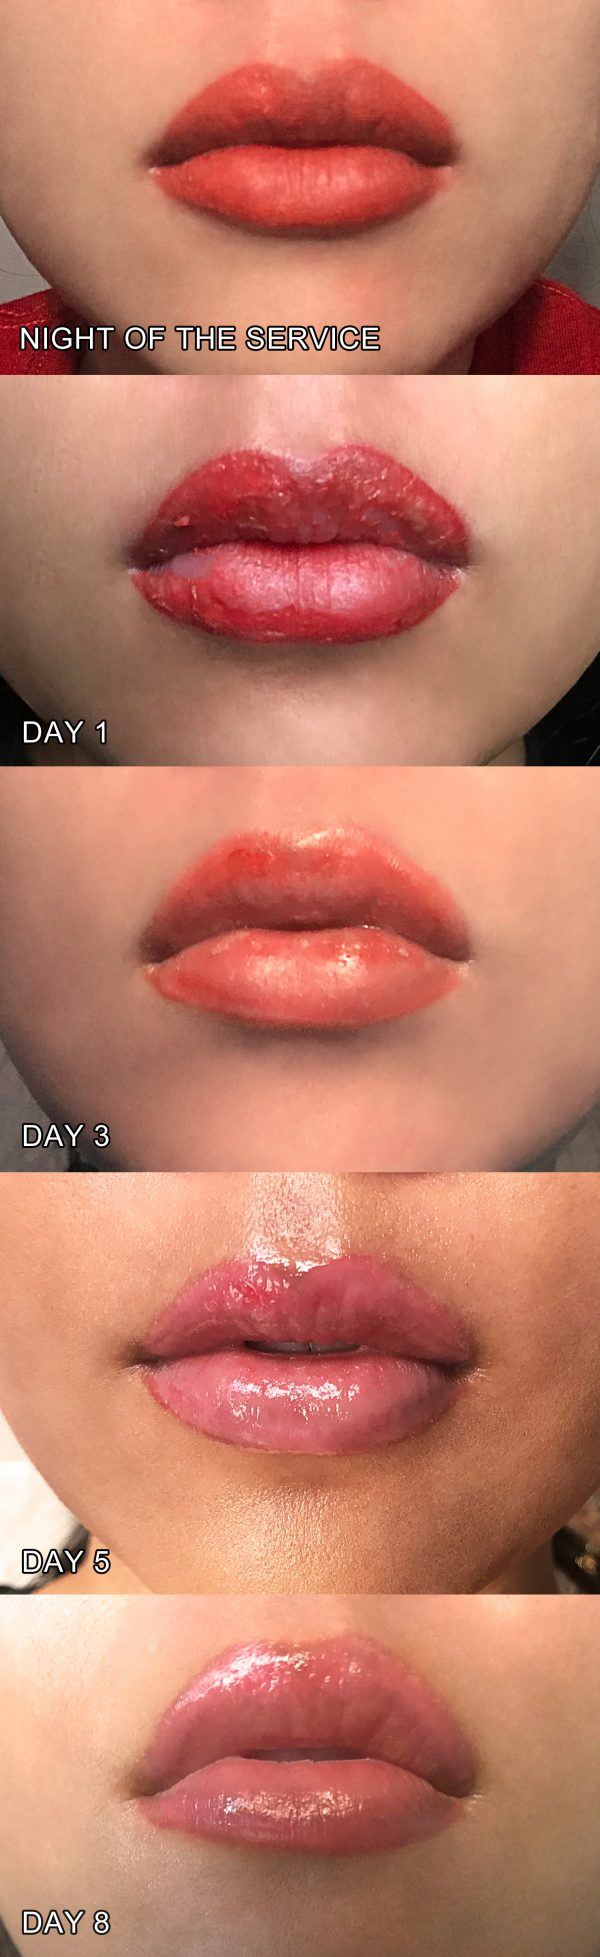 8 days after the permanent makeup application: You can see that the bright red-orange color starts to peel, revealing a pink color underneath. The pink will settle in and fade after 1-2 months. - www.theballeronabudget.com